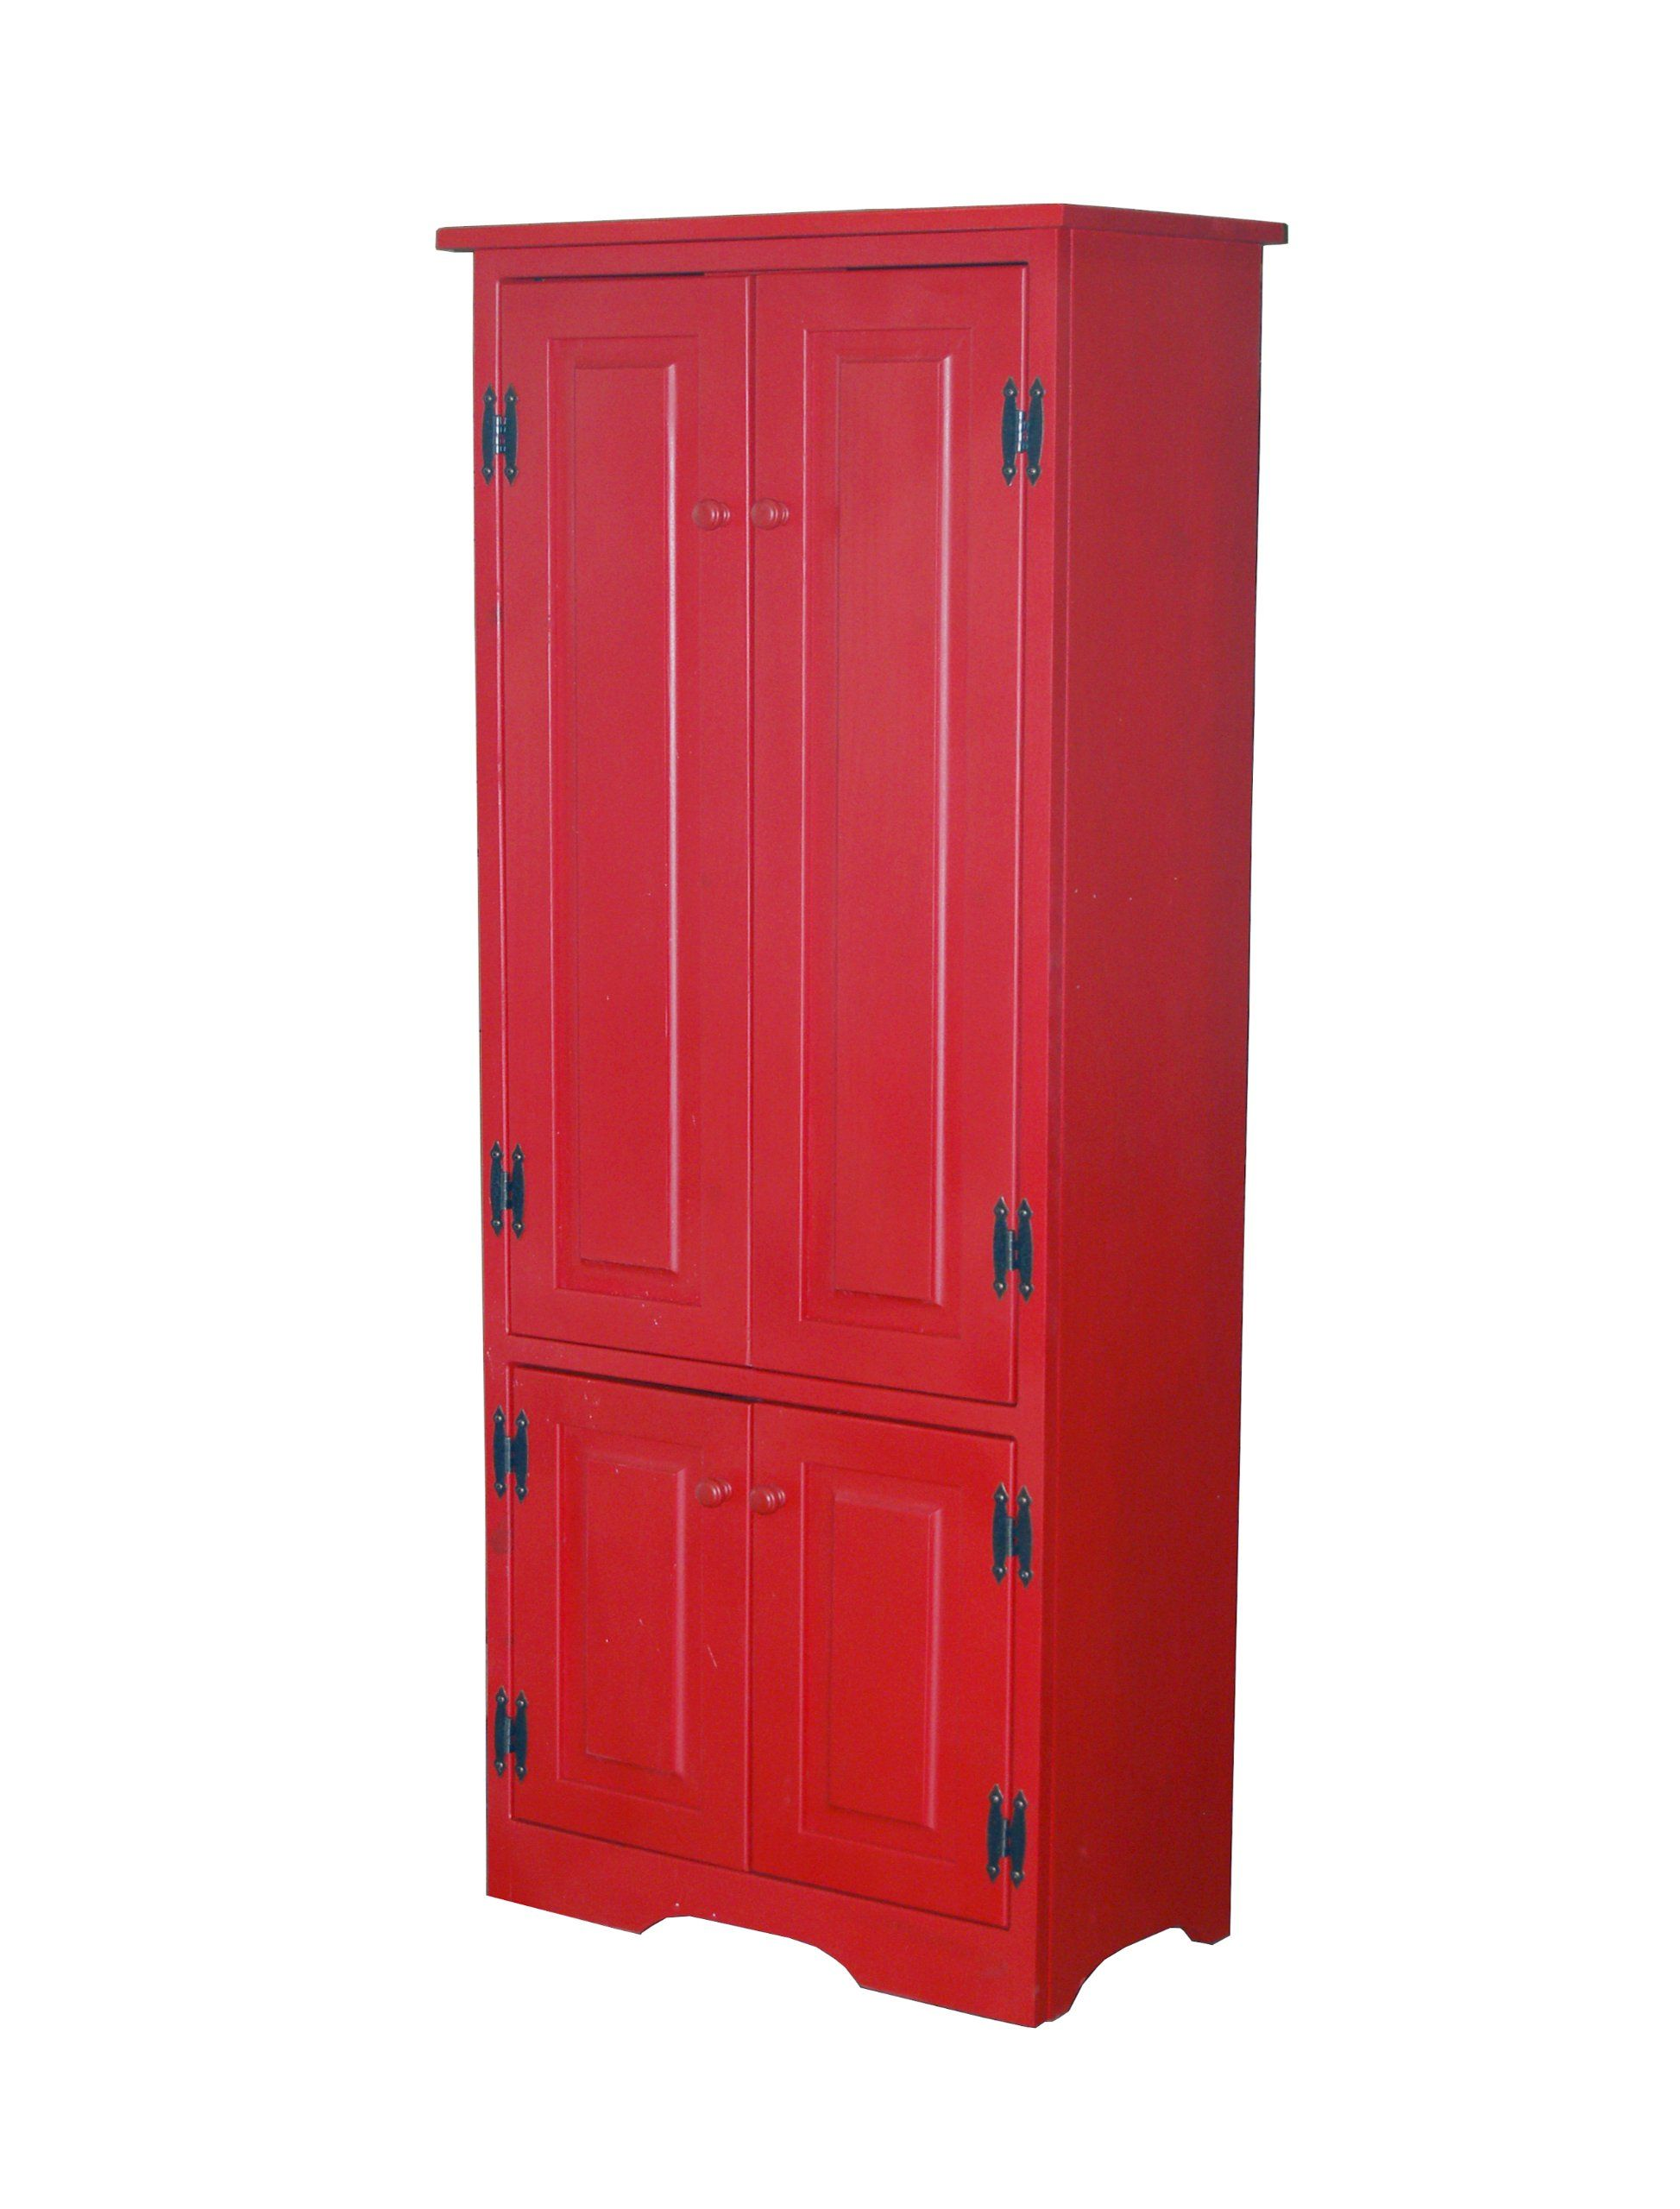 Target Marketing Systems Tall Storage Cabinet With 2 Adjustable Top Shelves And 1 Bottom Shelf In 2020 Tall Cabinet Storage Wood Storage Cabinets Tall Kitchen Storage